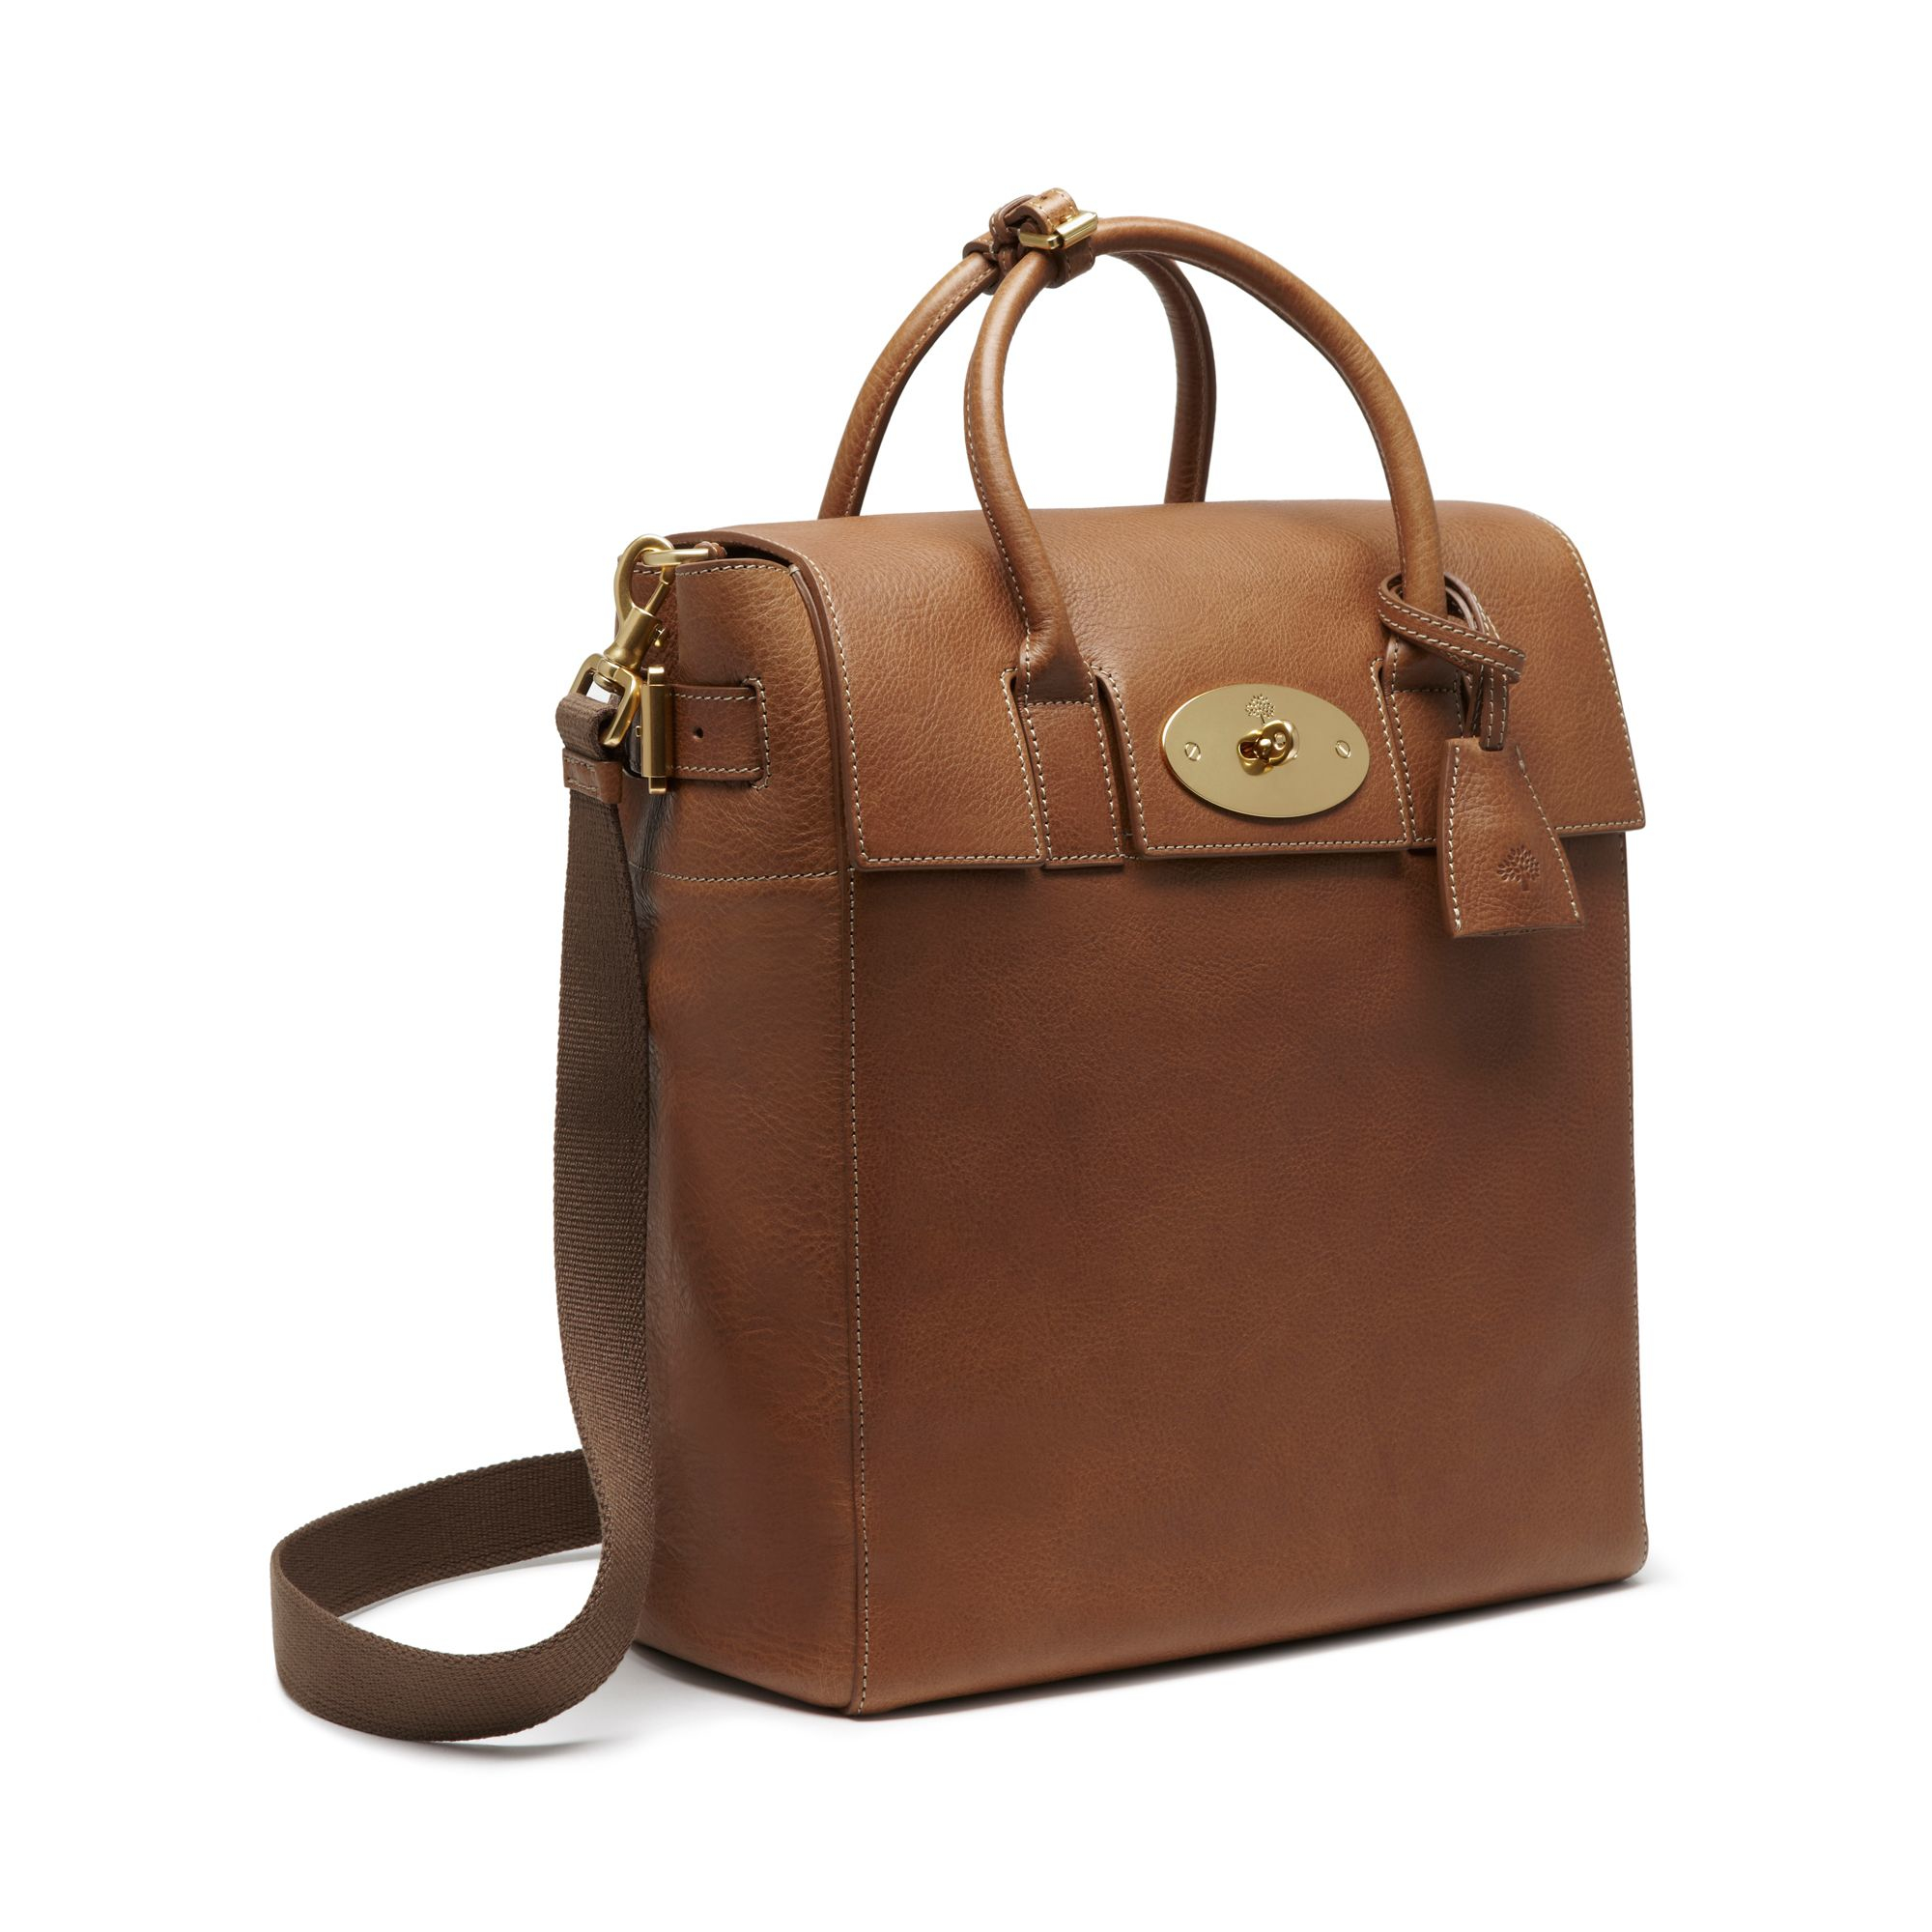 47ae4f84ef0 Mulberry Large Cara Delevingne Bag in Brown - Lyst